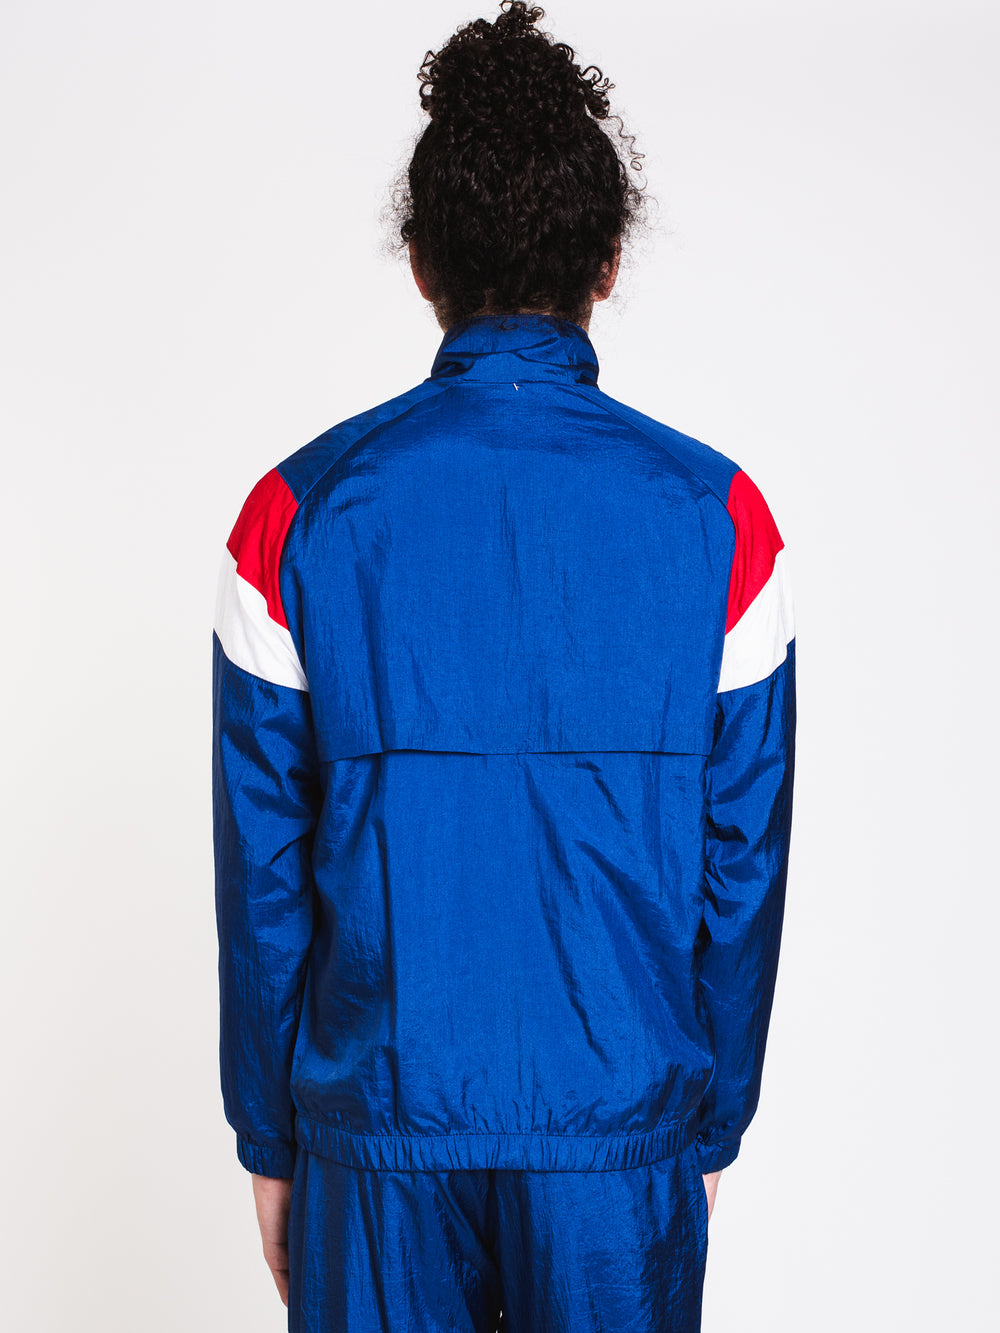 MENS NYLON WARMUP JACKET - ROYAL